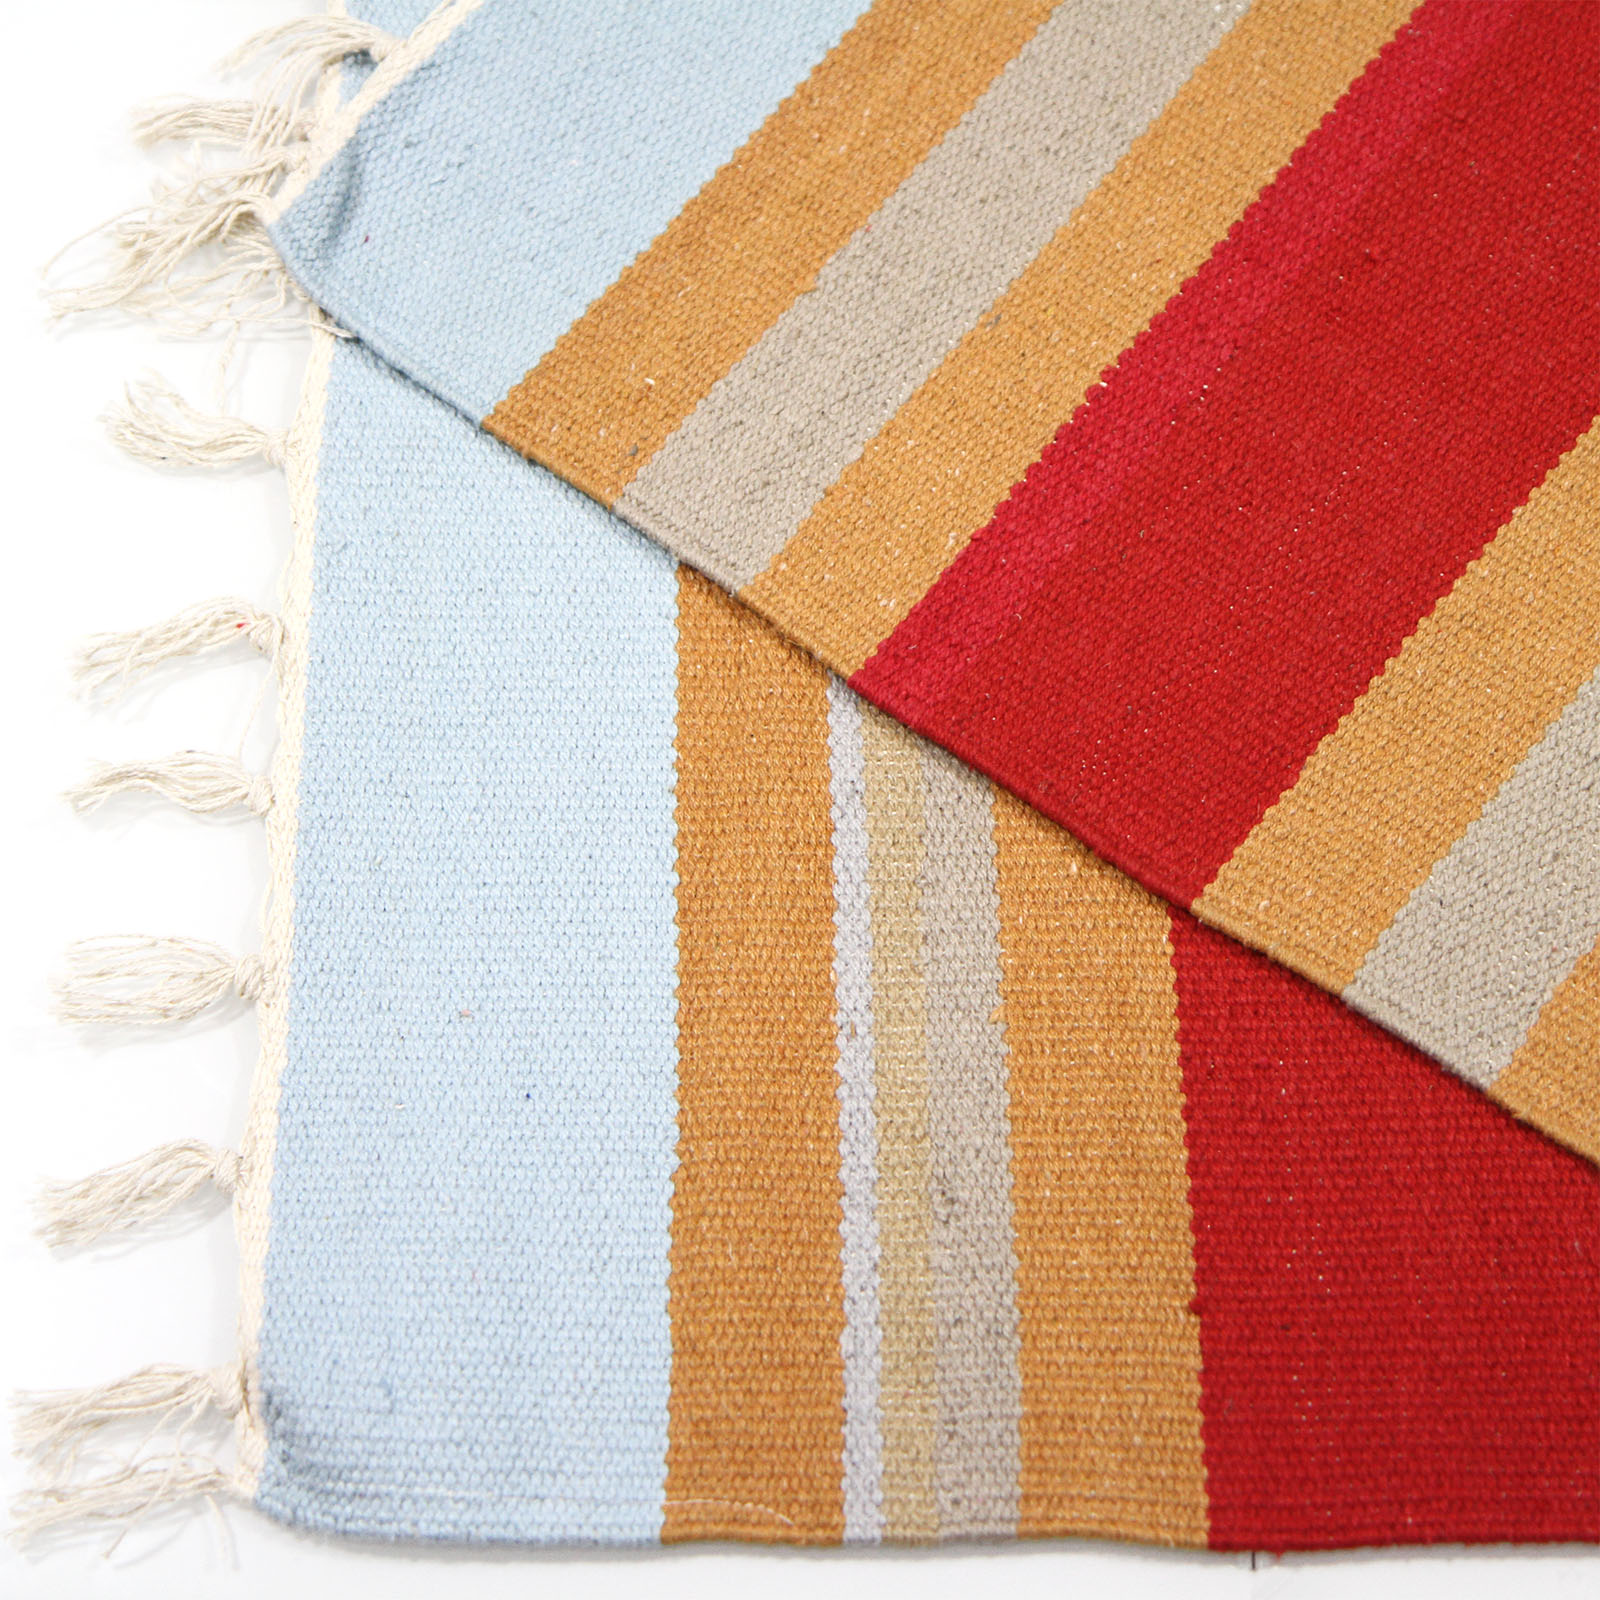 striped kitchen rug outdoor layout colourful 100 cotton flat woven 55x85cm